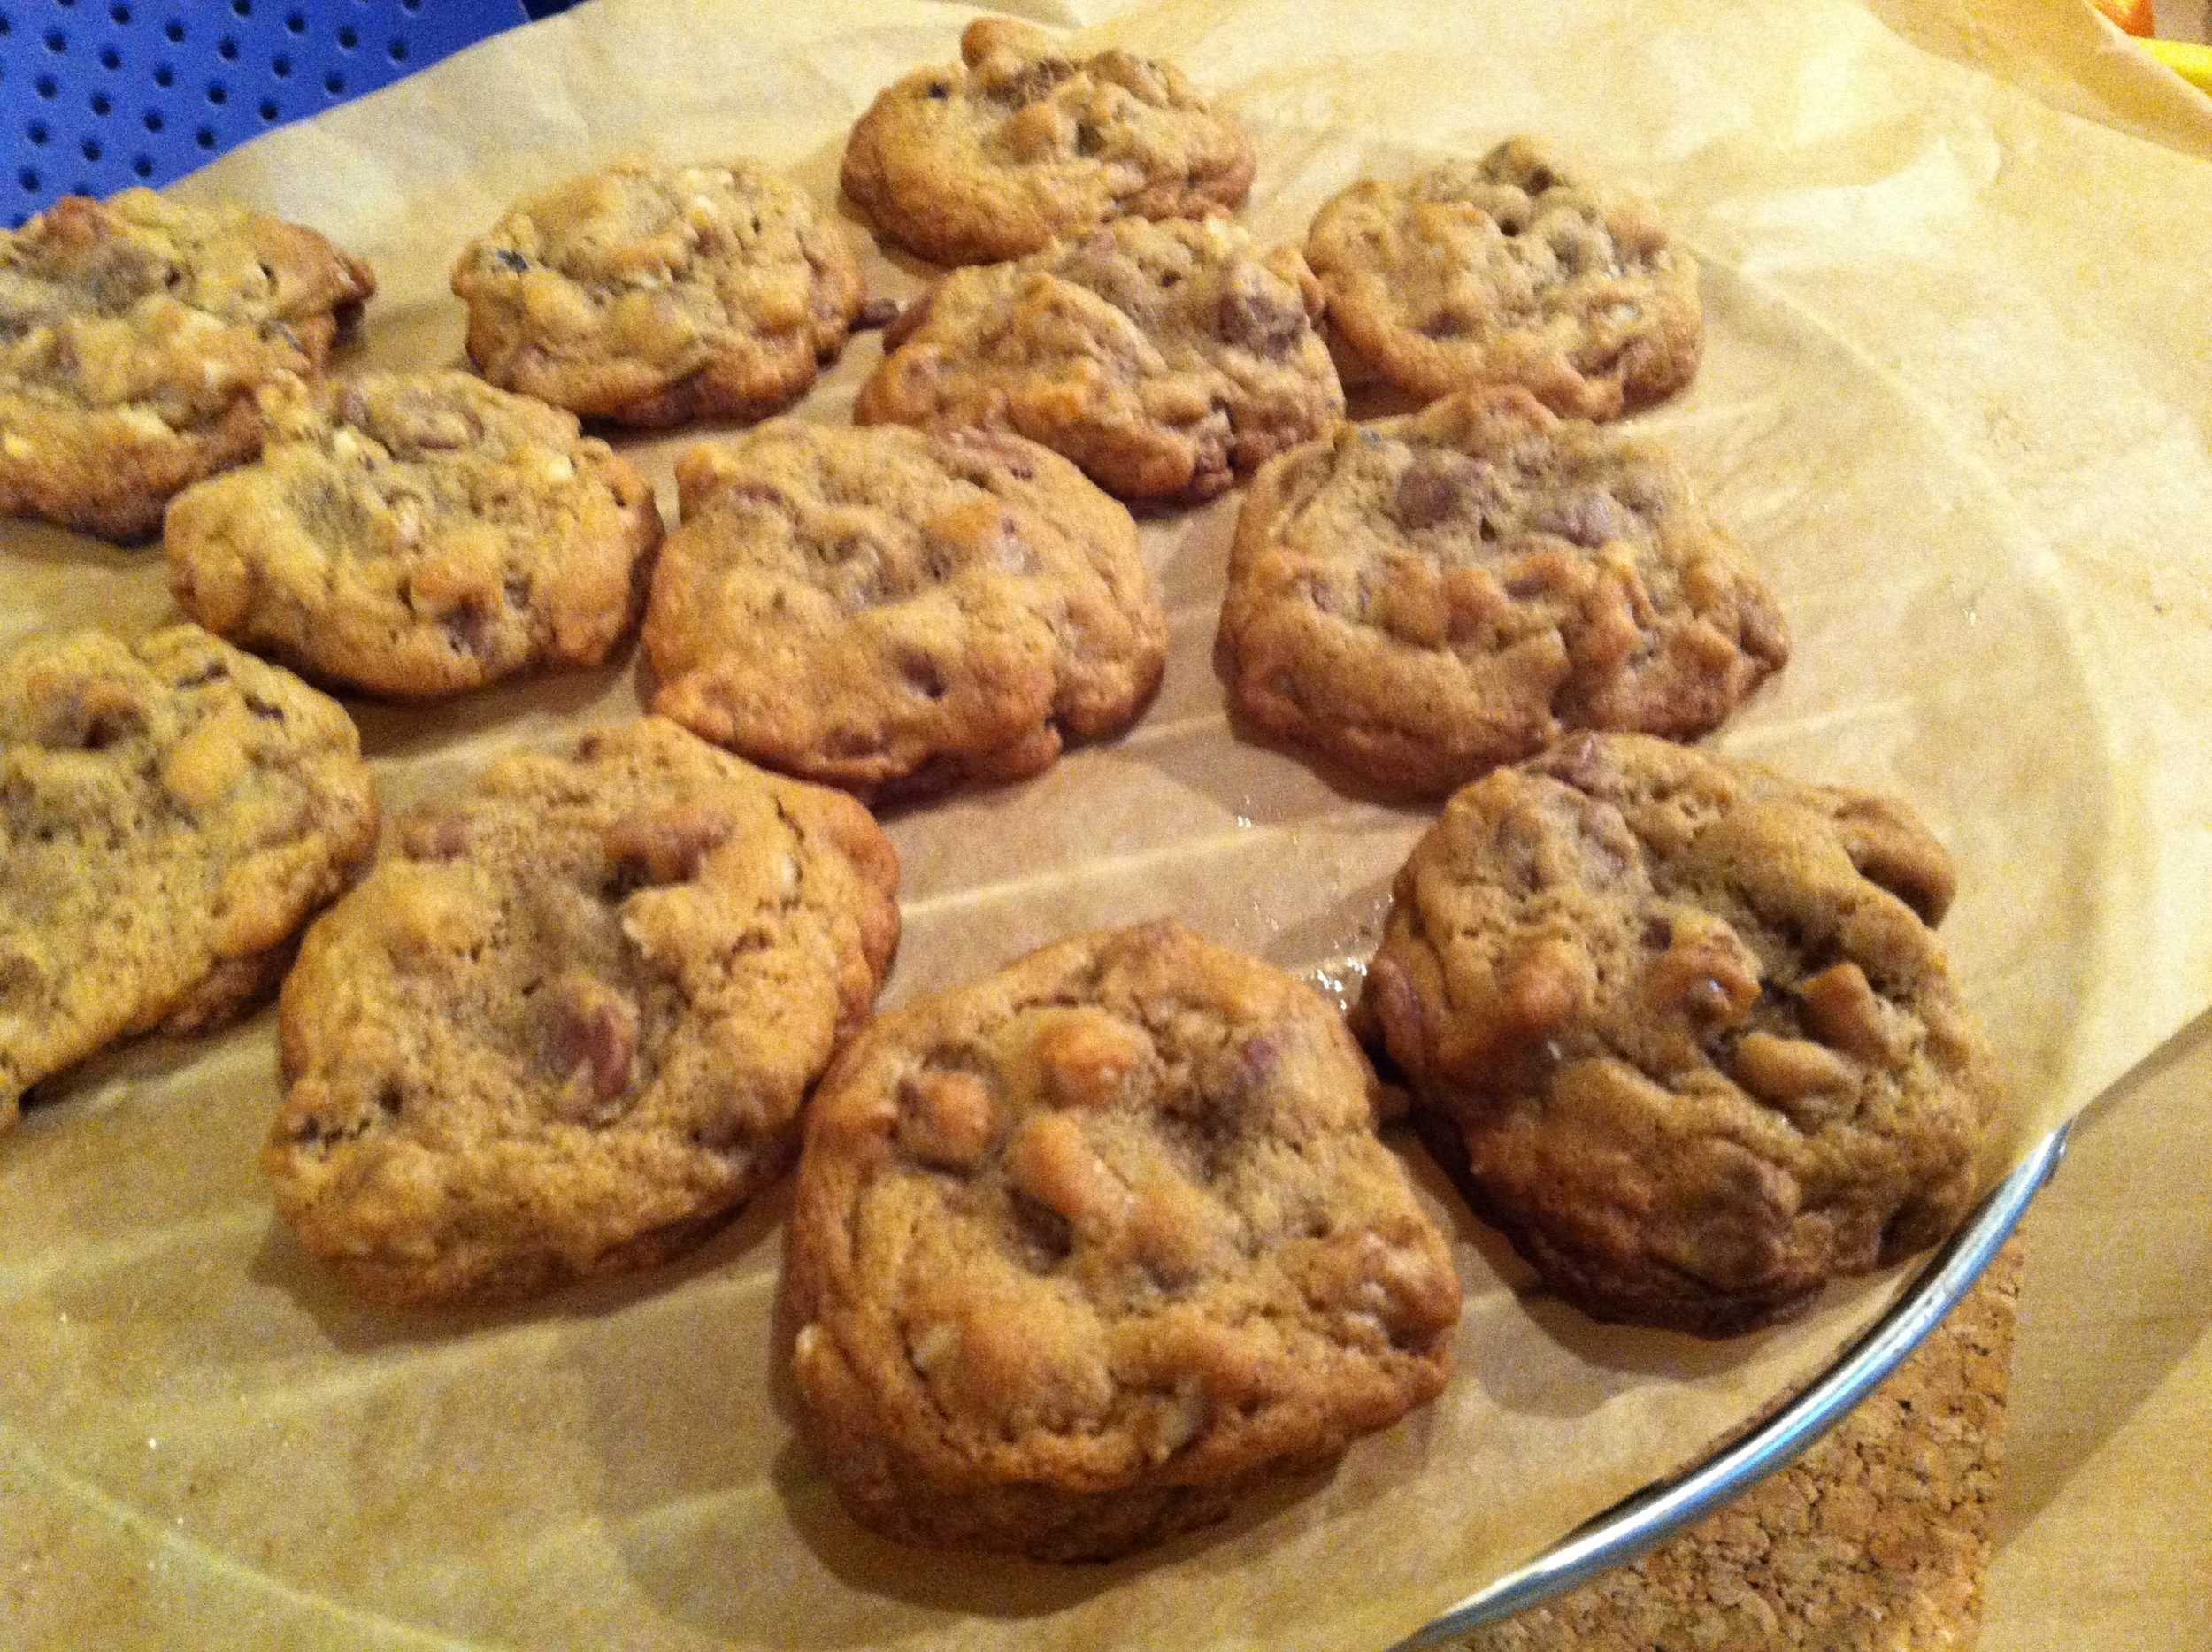 Alisha's Milk Chocolate Chip Walnut